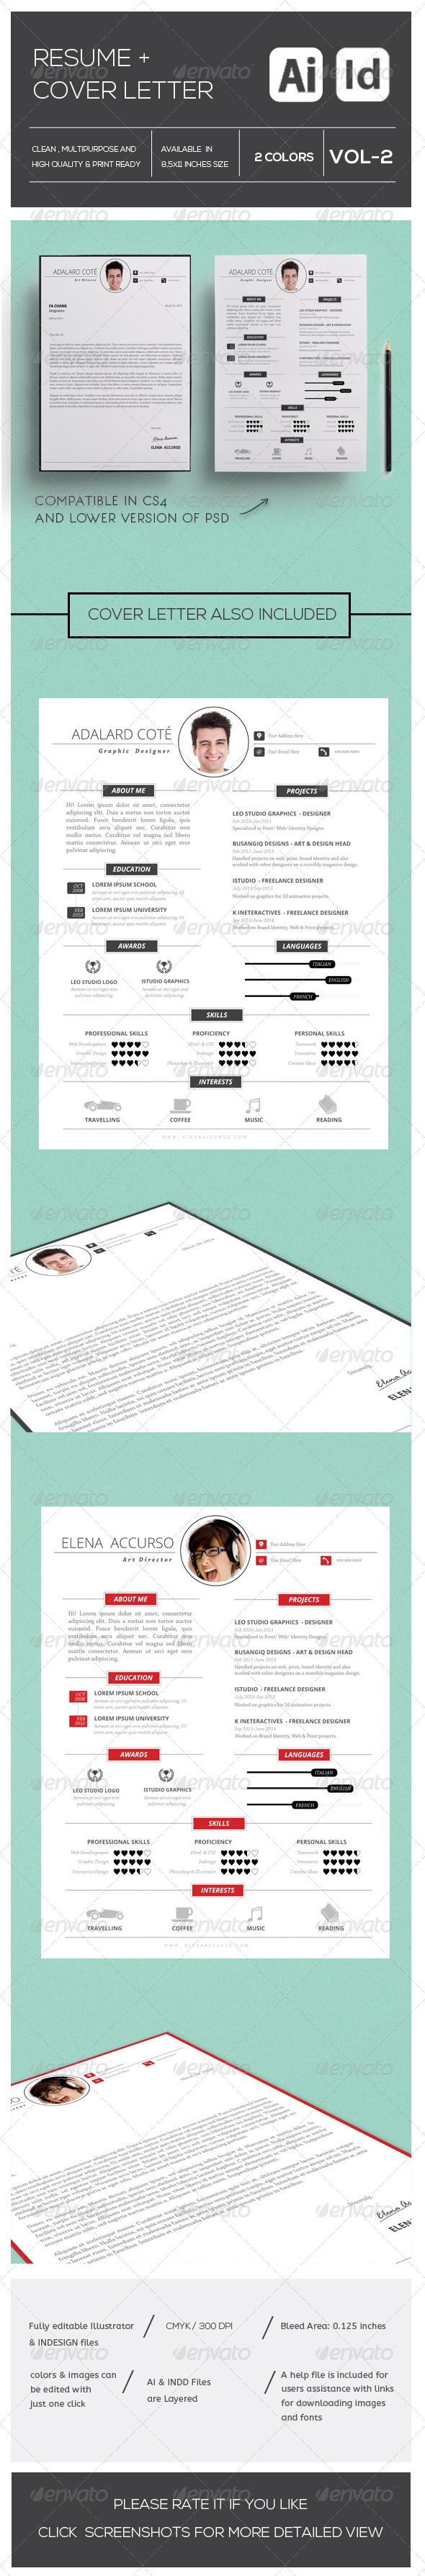 Simple Resume and Cover Letter Vol-2